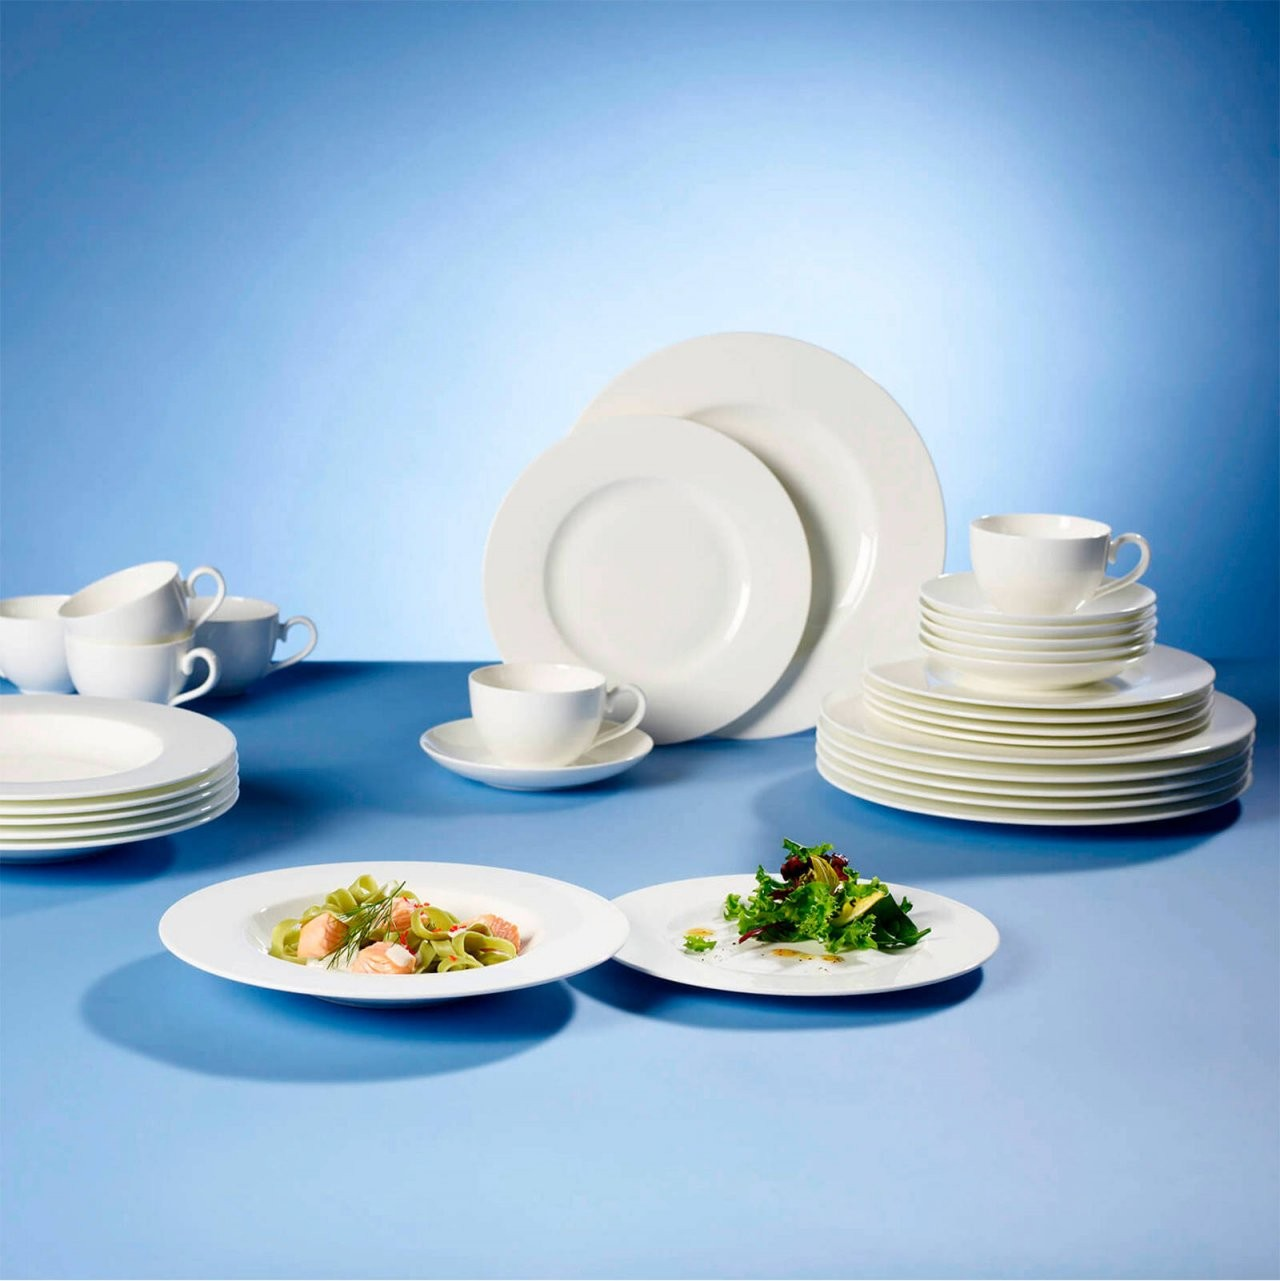 Villeroy  Boch Royal Basic Serviesset (30Delig)  Wehkamp von Villeroy & Boch Royal Basic Set 30 Teilig Bild